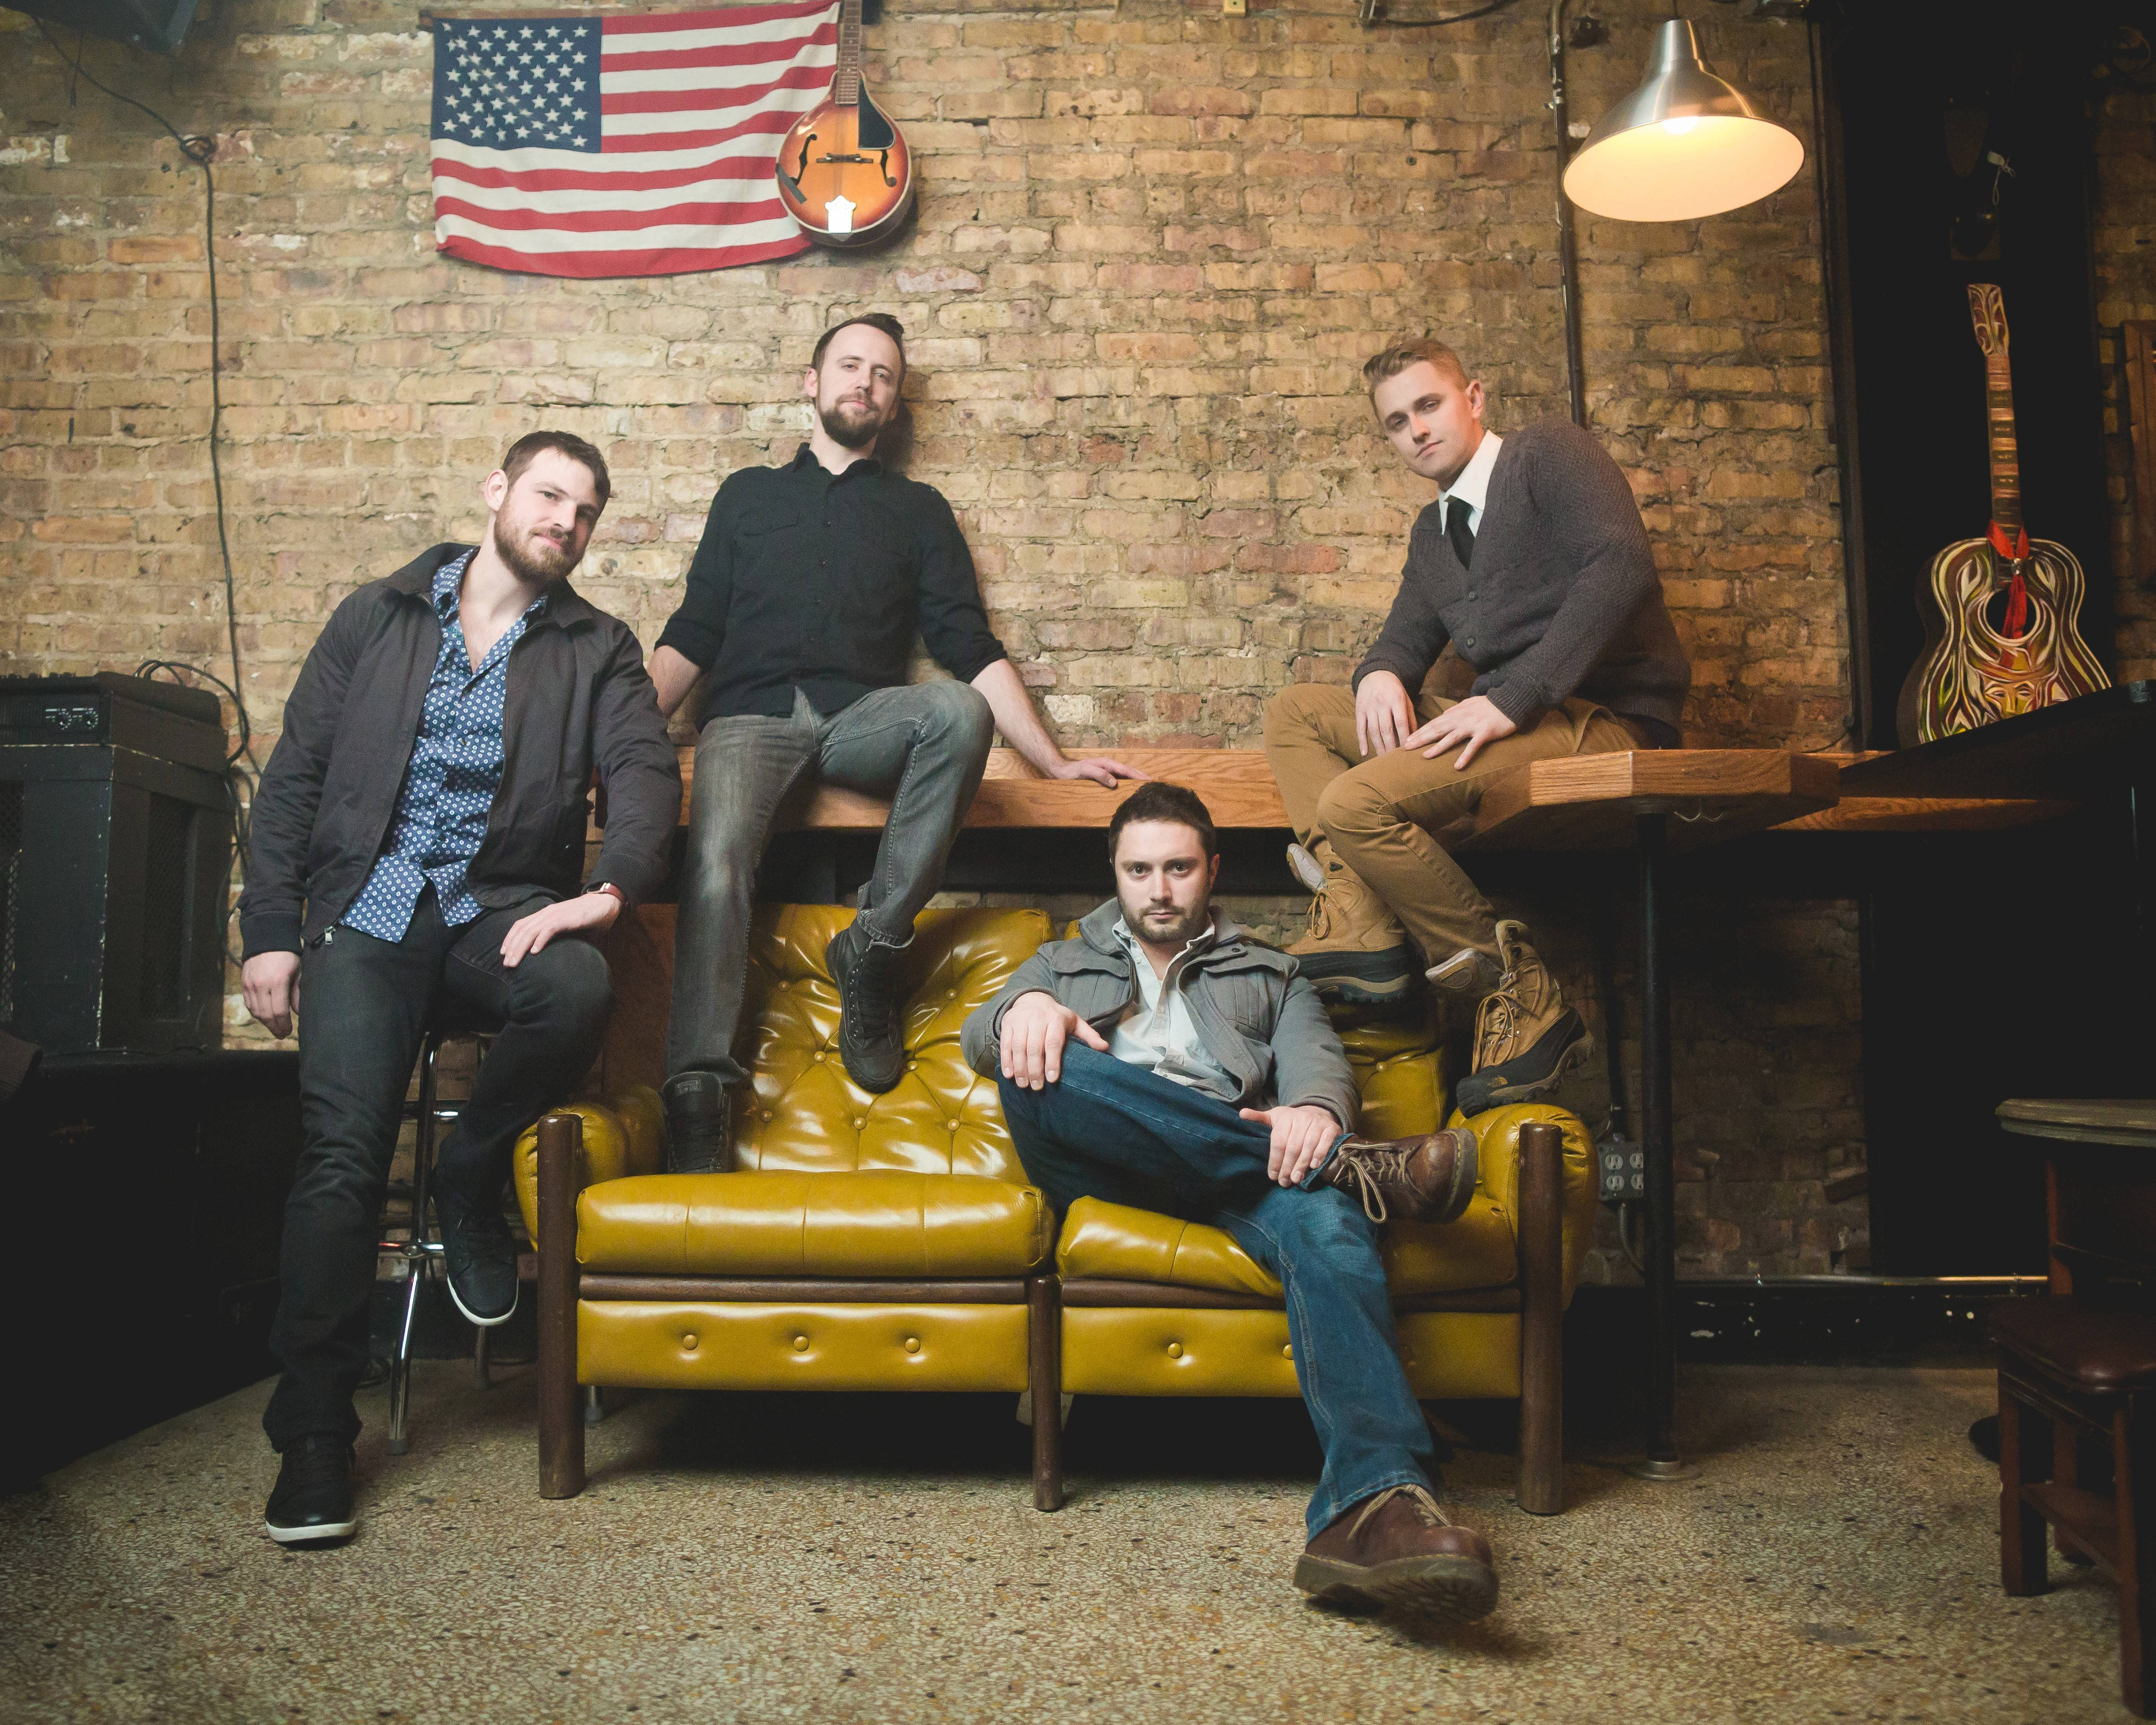 Sound check: Old Dominion, Fletcher Rockwell play double-feature in Rosemont